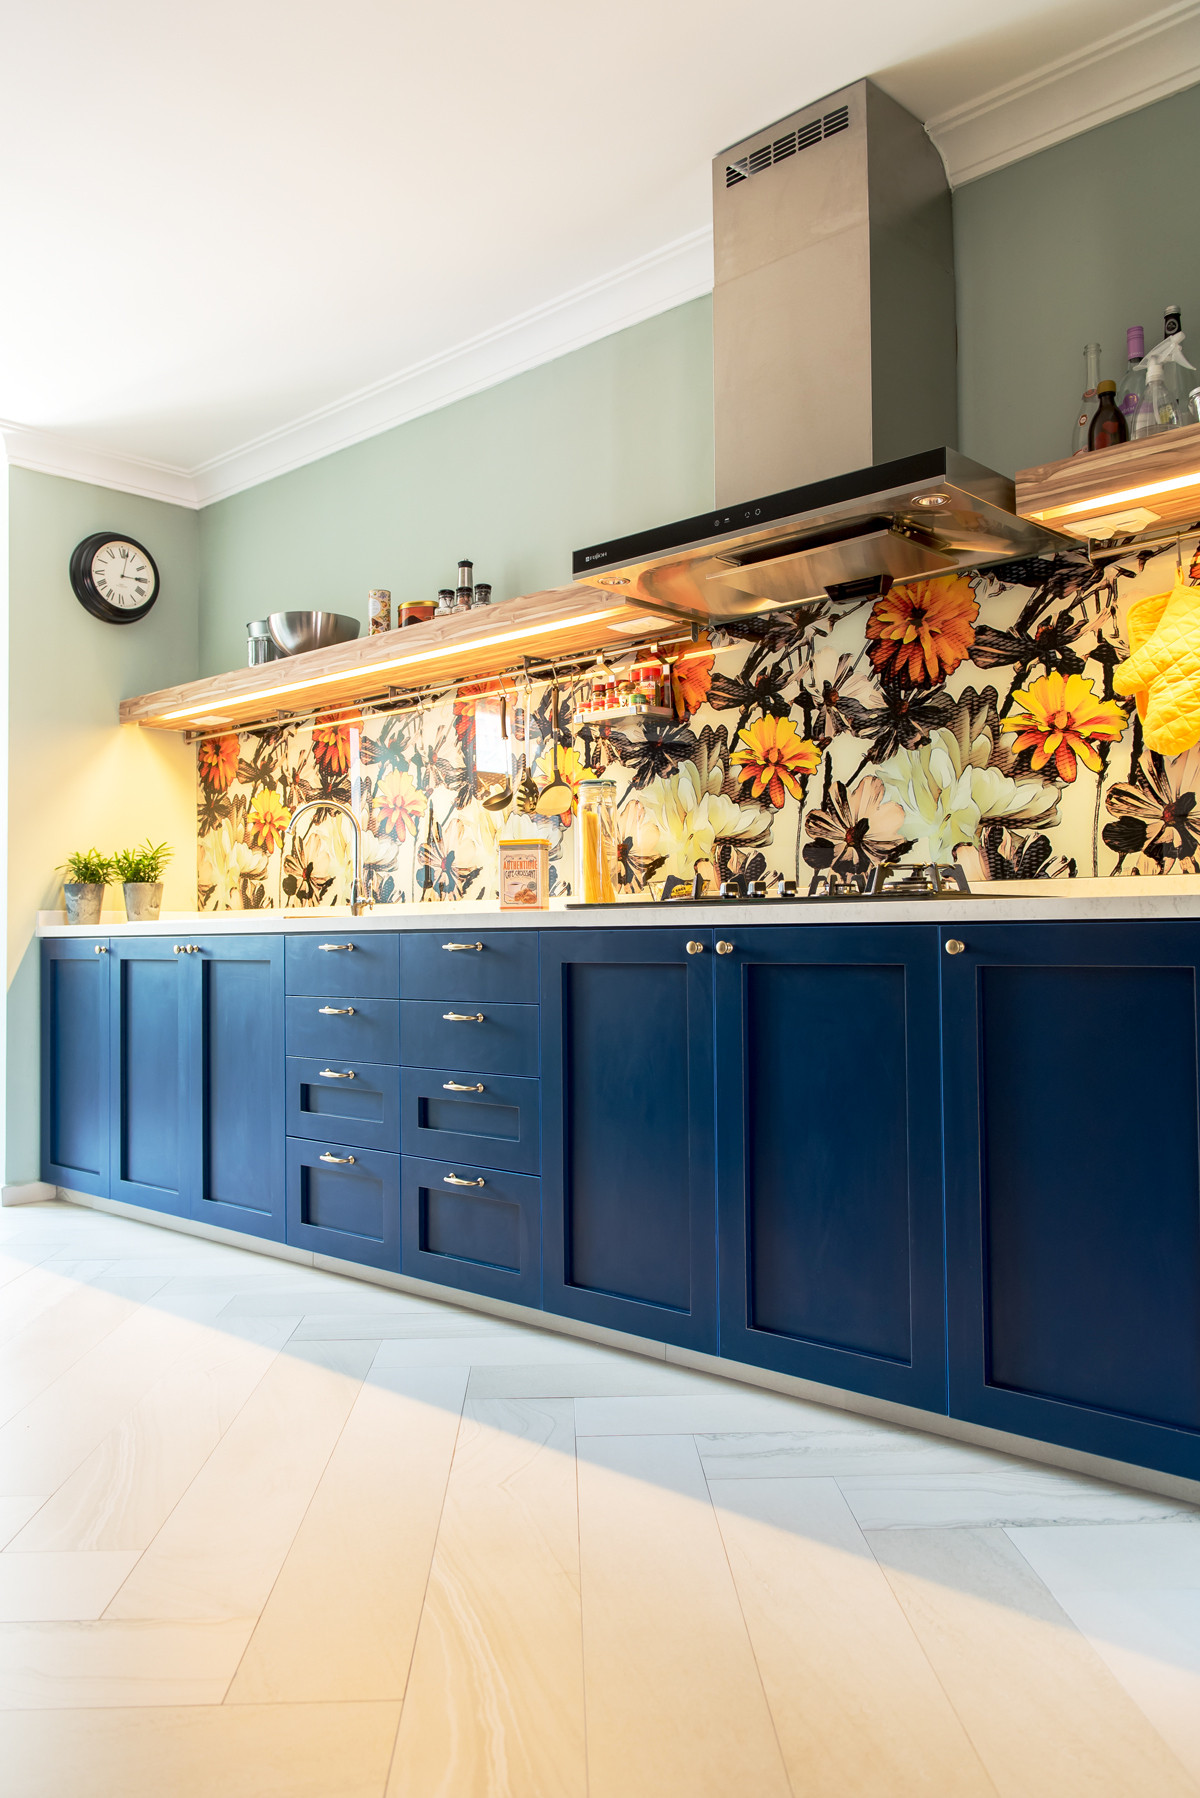 75 Beautiful Kitchen With Blue Cabinets And Yellow Backsplash Pictures Ideas May 2021 Houzz